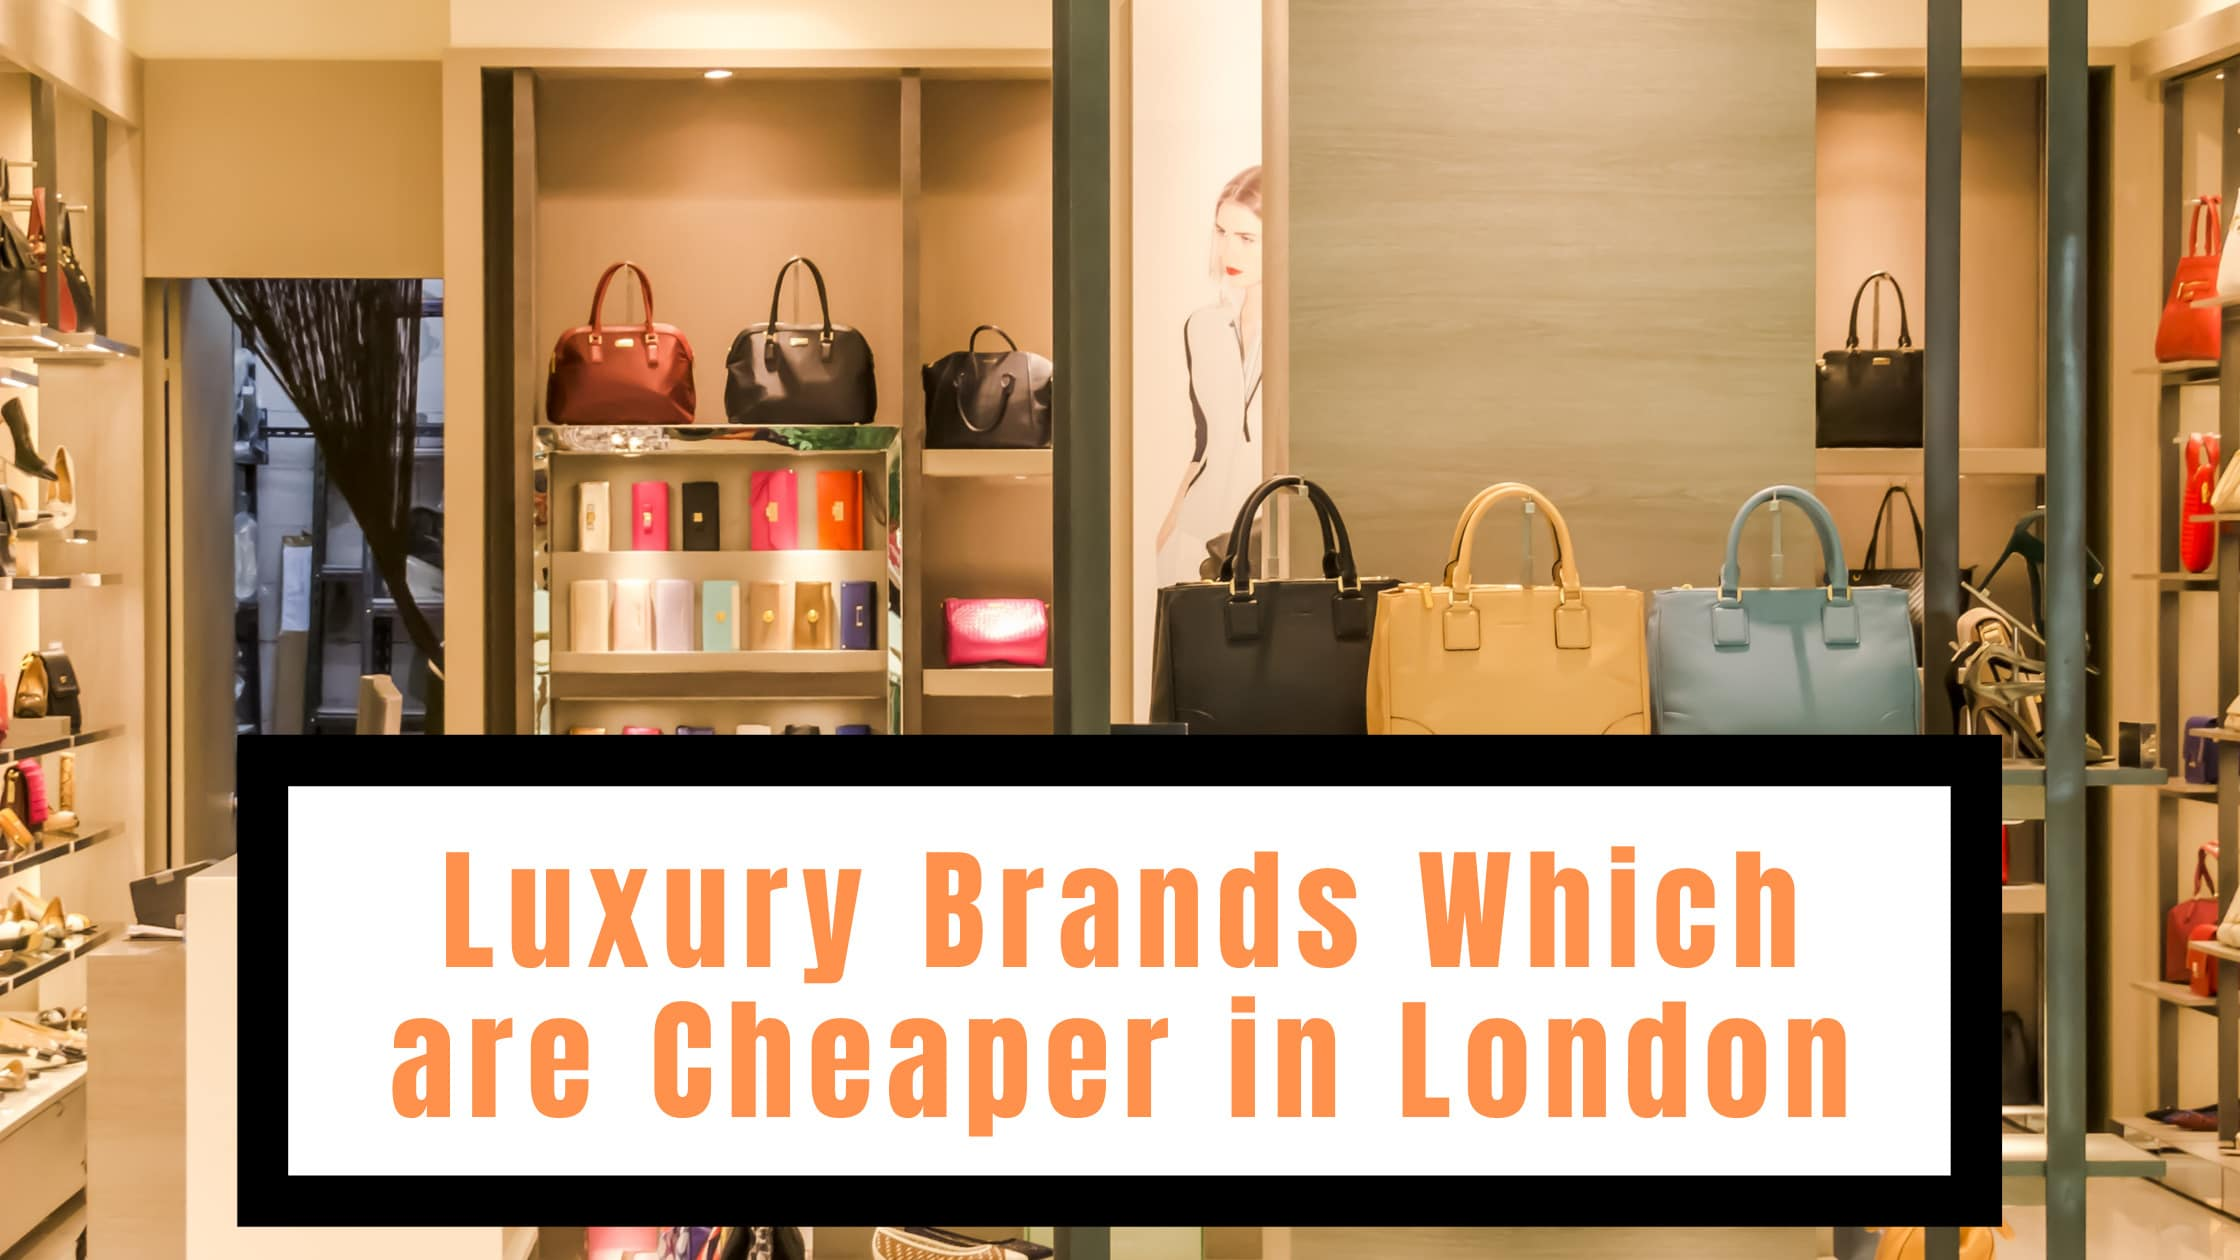 Luxury Brands Which Are Cheaper in London